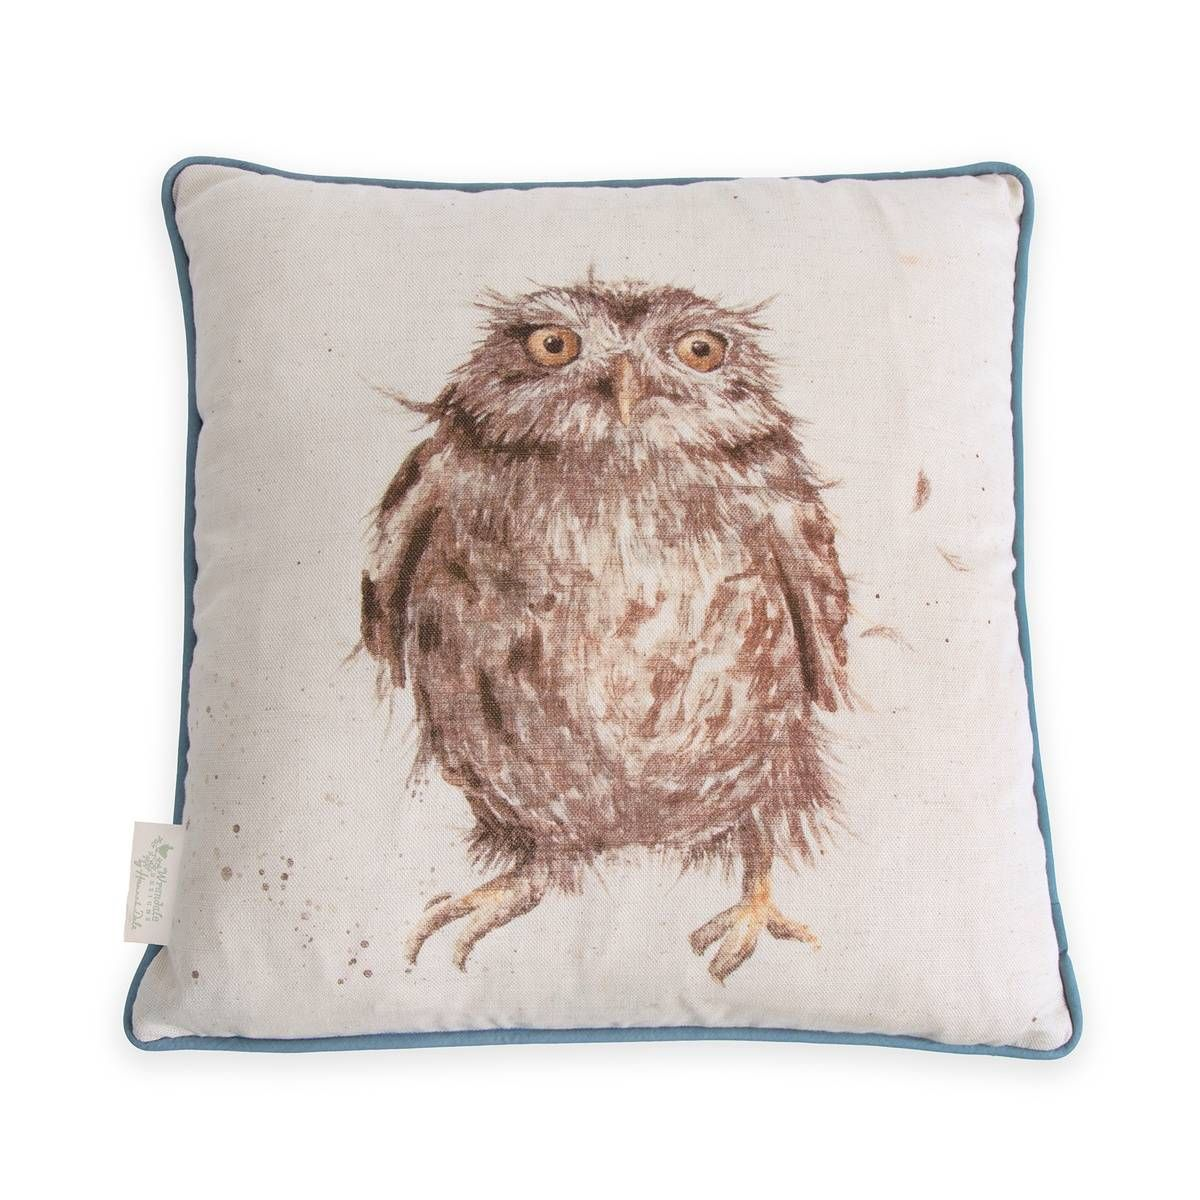 Wrendale Owl Cushion, ideal prezzi for Mother\'s Day - we all know at ...